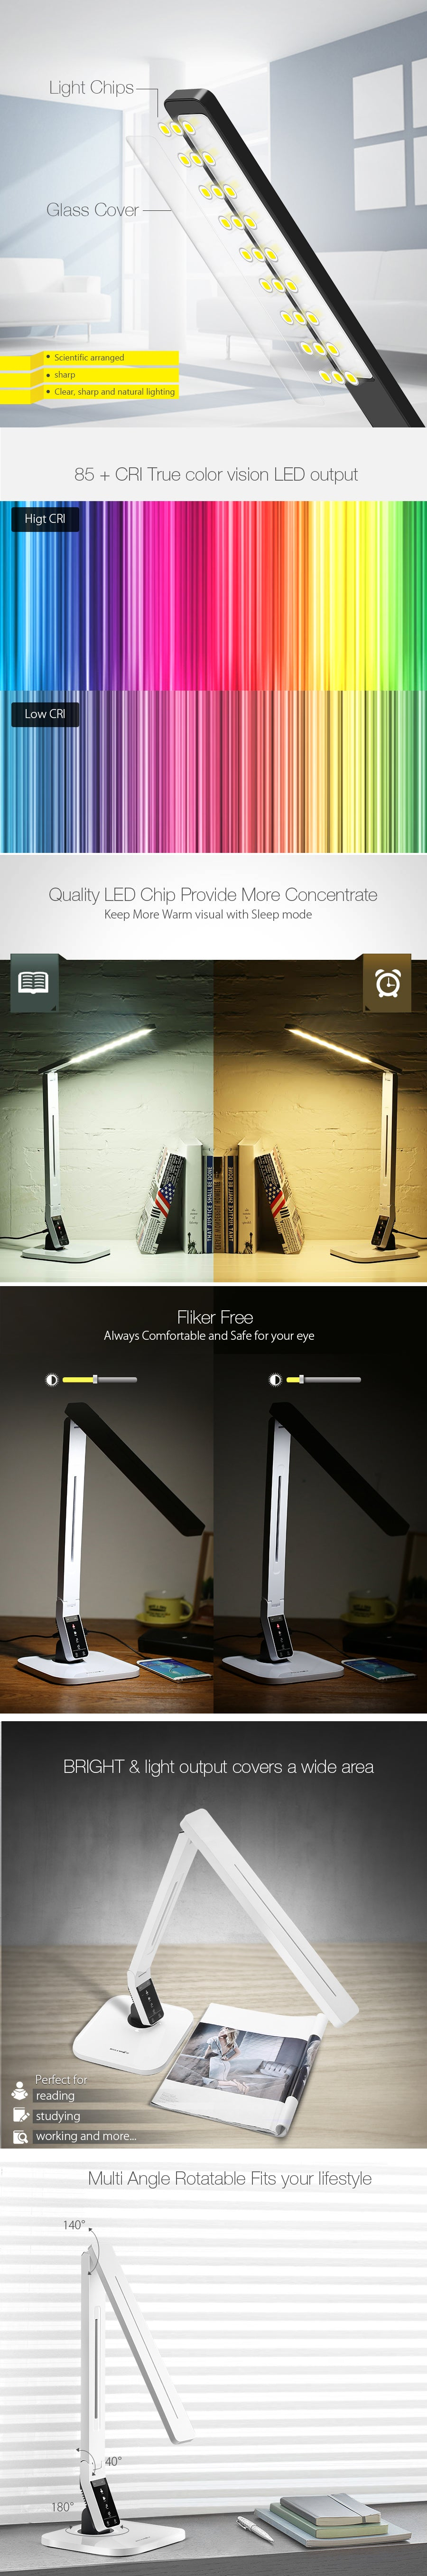 BlitzWolf® BW-LT1S Eye Protection Smart LED Dimmable Desk Lamp With 1.5A USB Charger